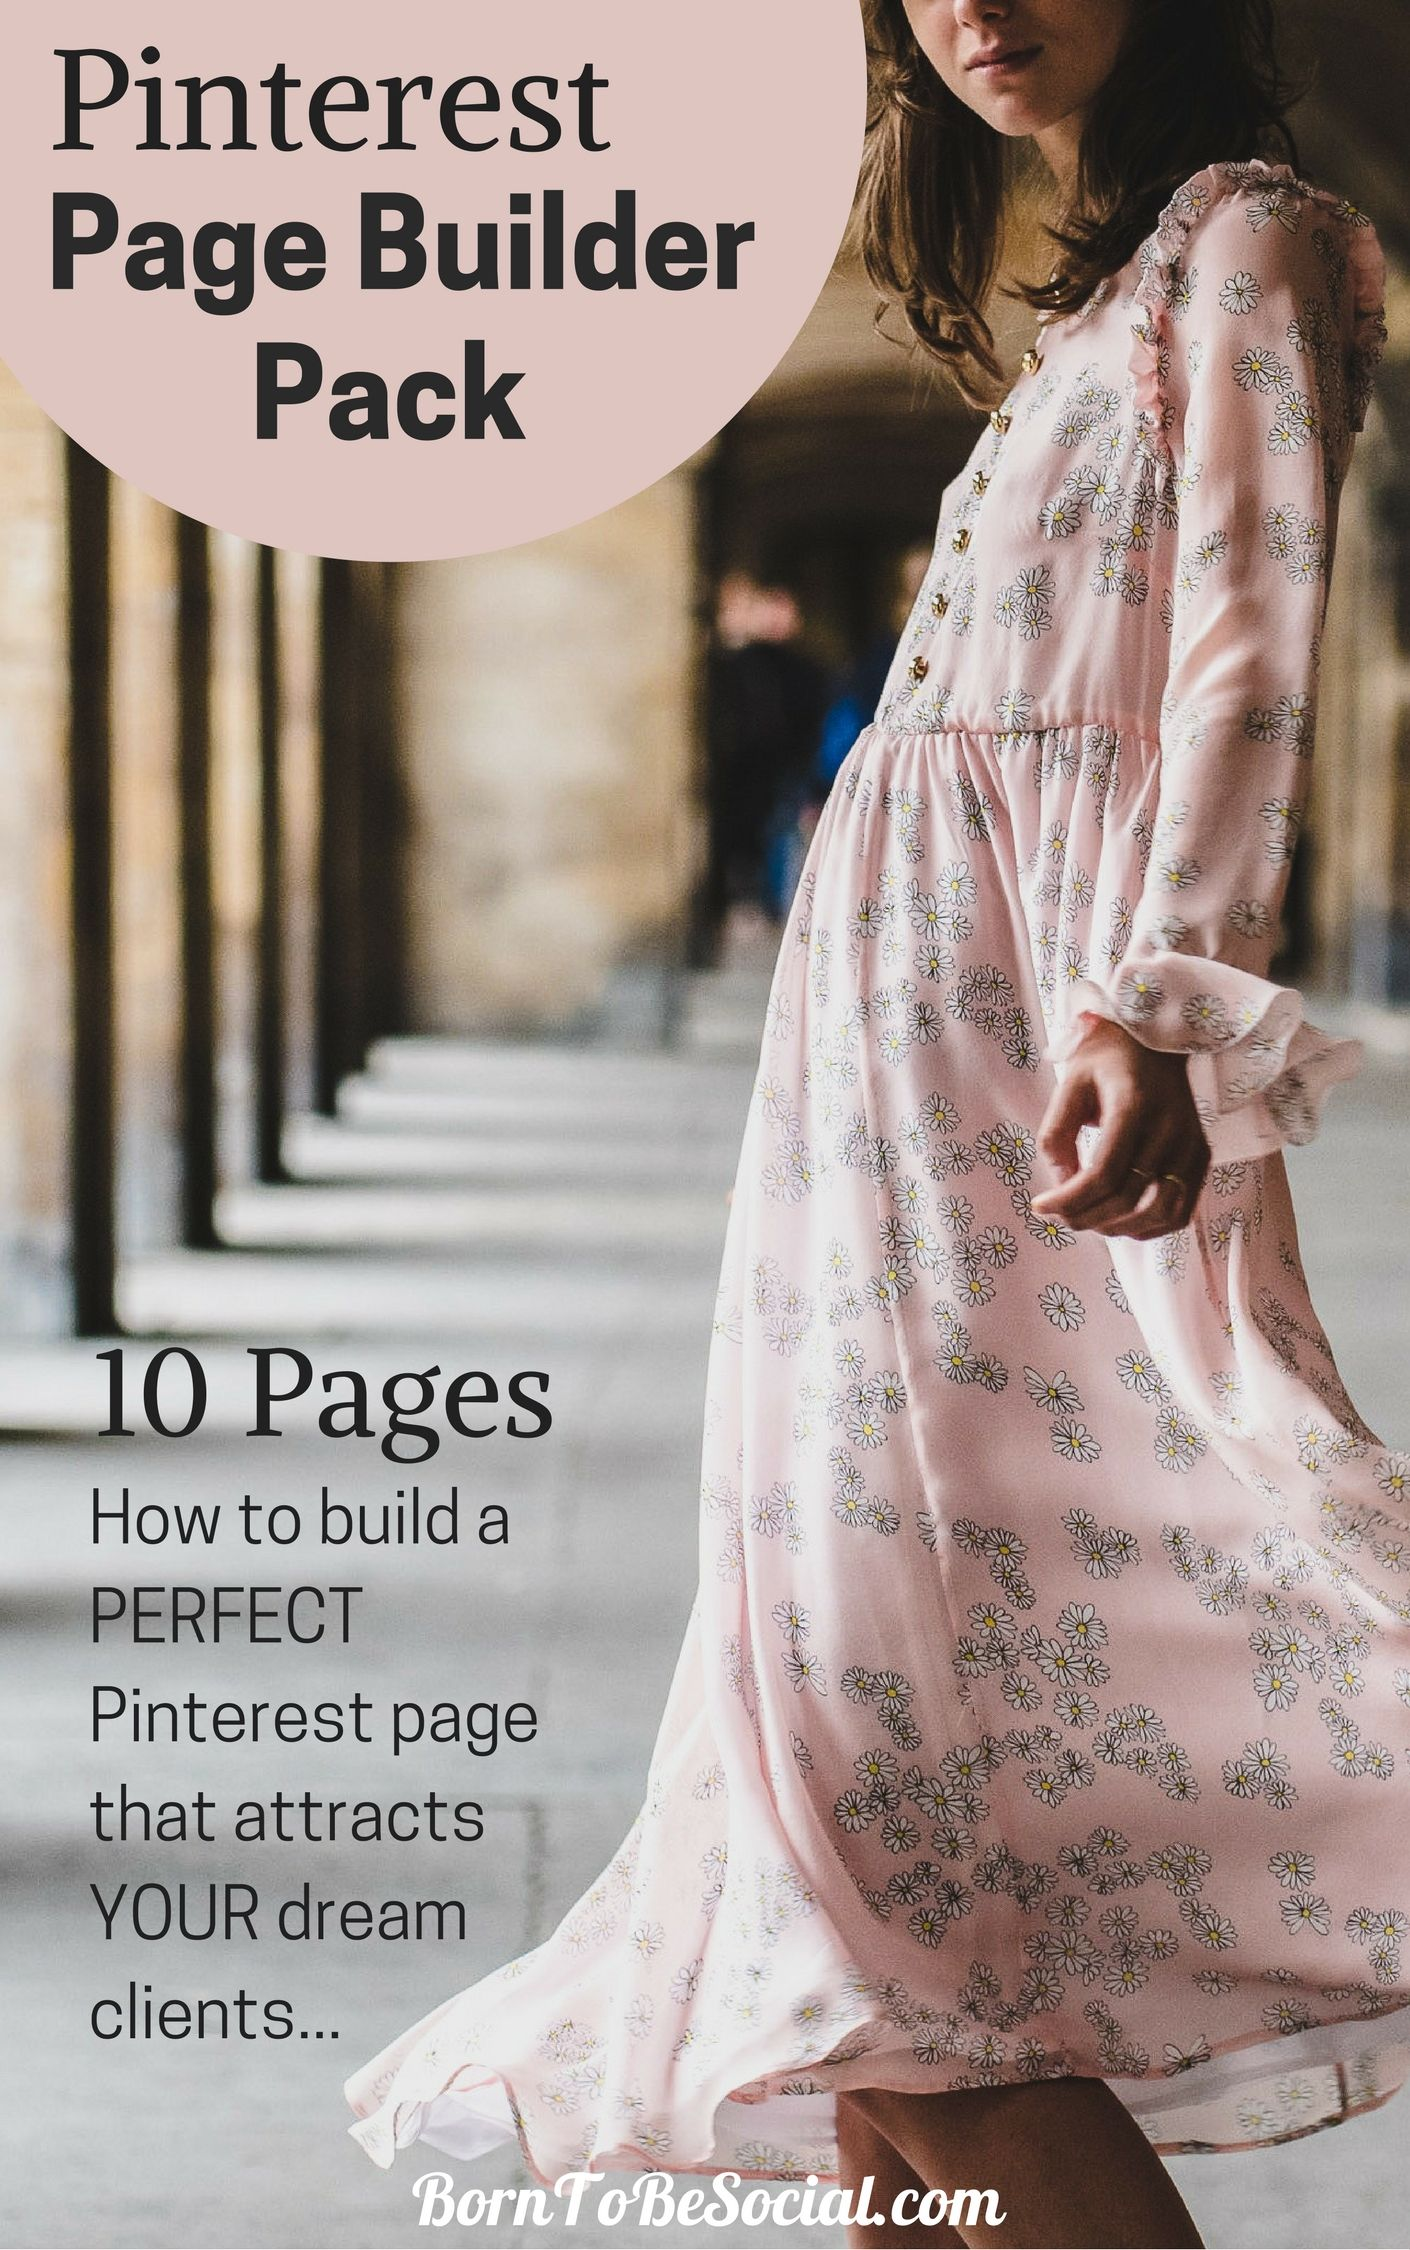 PINTEREST FOR BUSINESS PAGE BUILDER PACK - A 10-page guide to build a Pinterest page that will attract your perfect clients and get more traffic to your website | via @BornToBeSocial, Pinterest Marketing & Consulting | Pinterest for Business #ExpertPinterest #PinterestForBusiness #PinterestMarketingTips #Pinterest